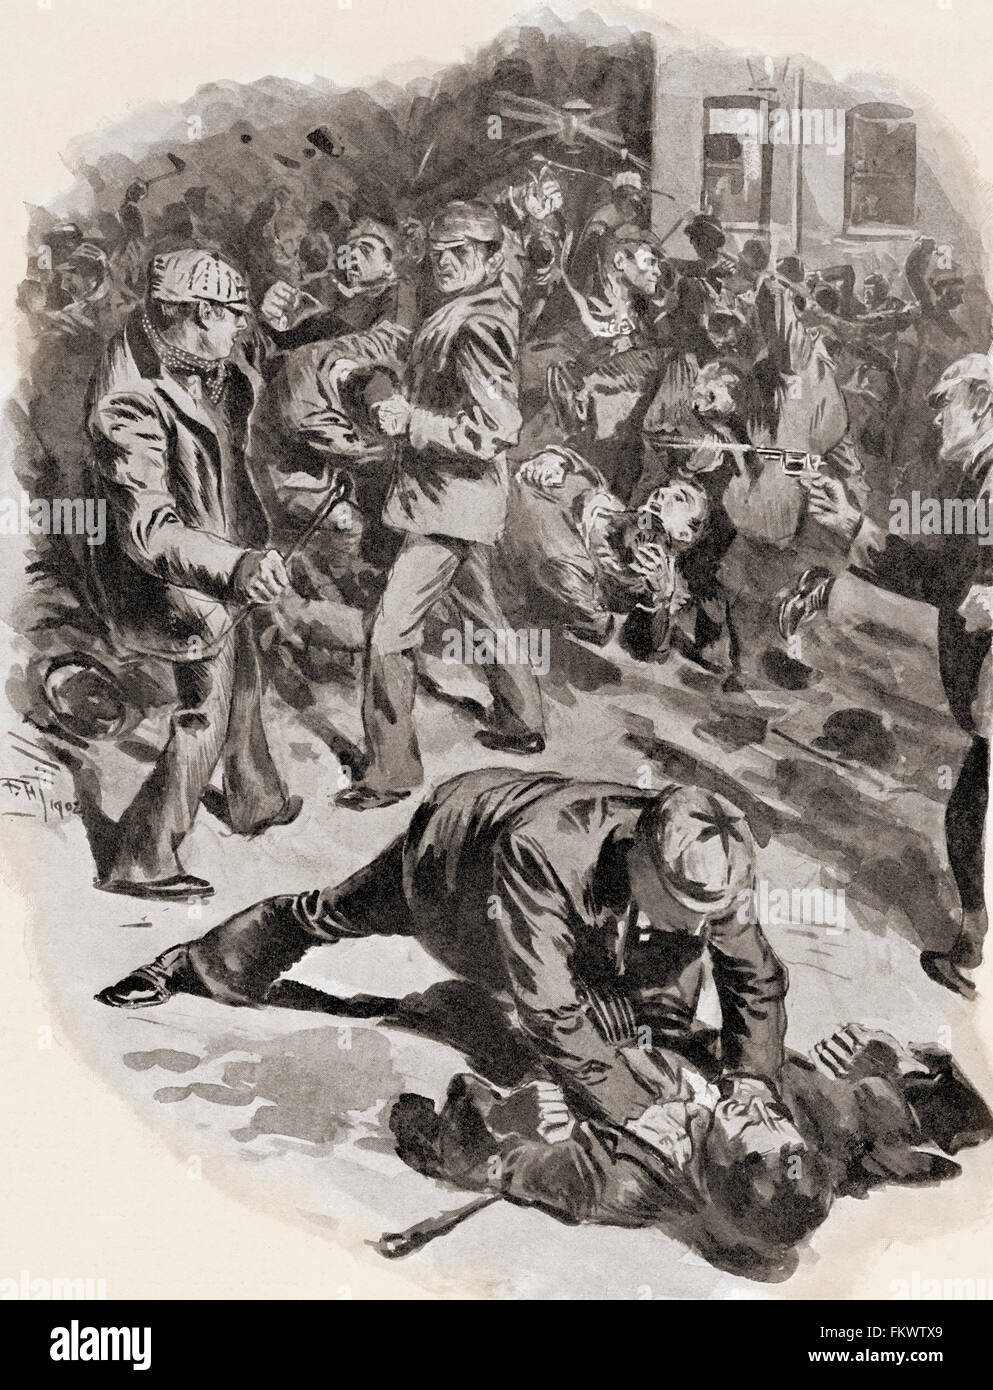 Gang warfare in London, England in the late 19th century. - Stock Image